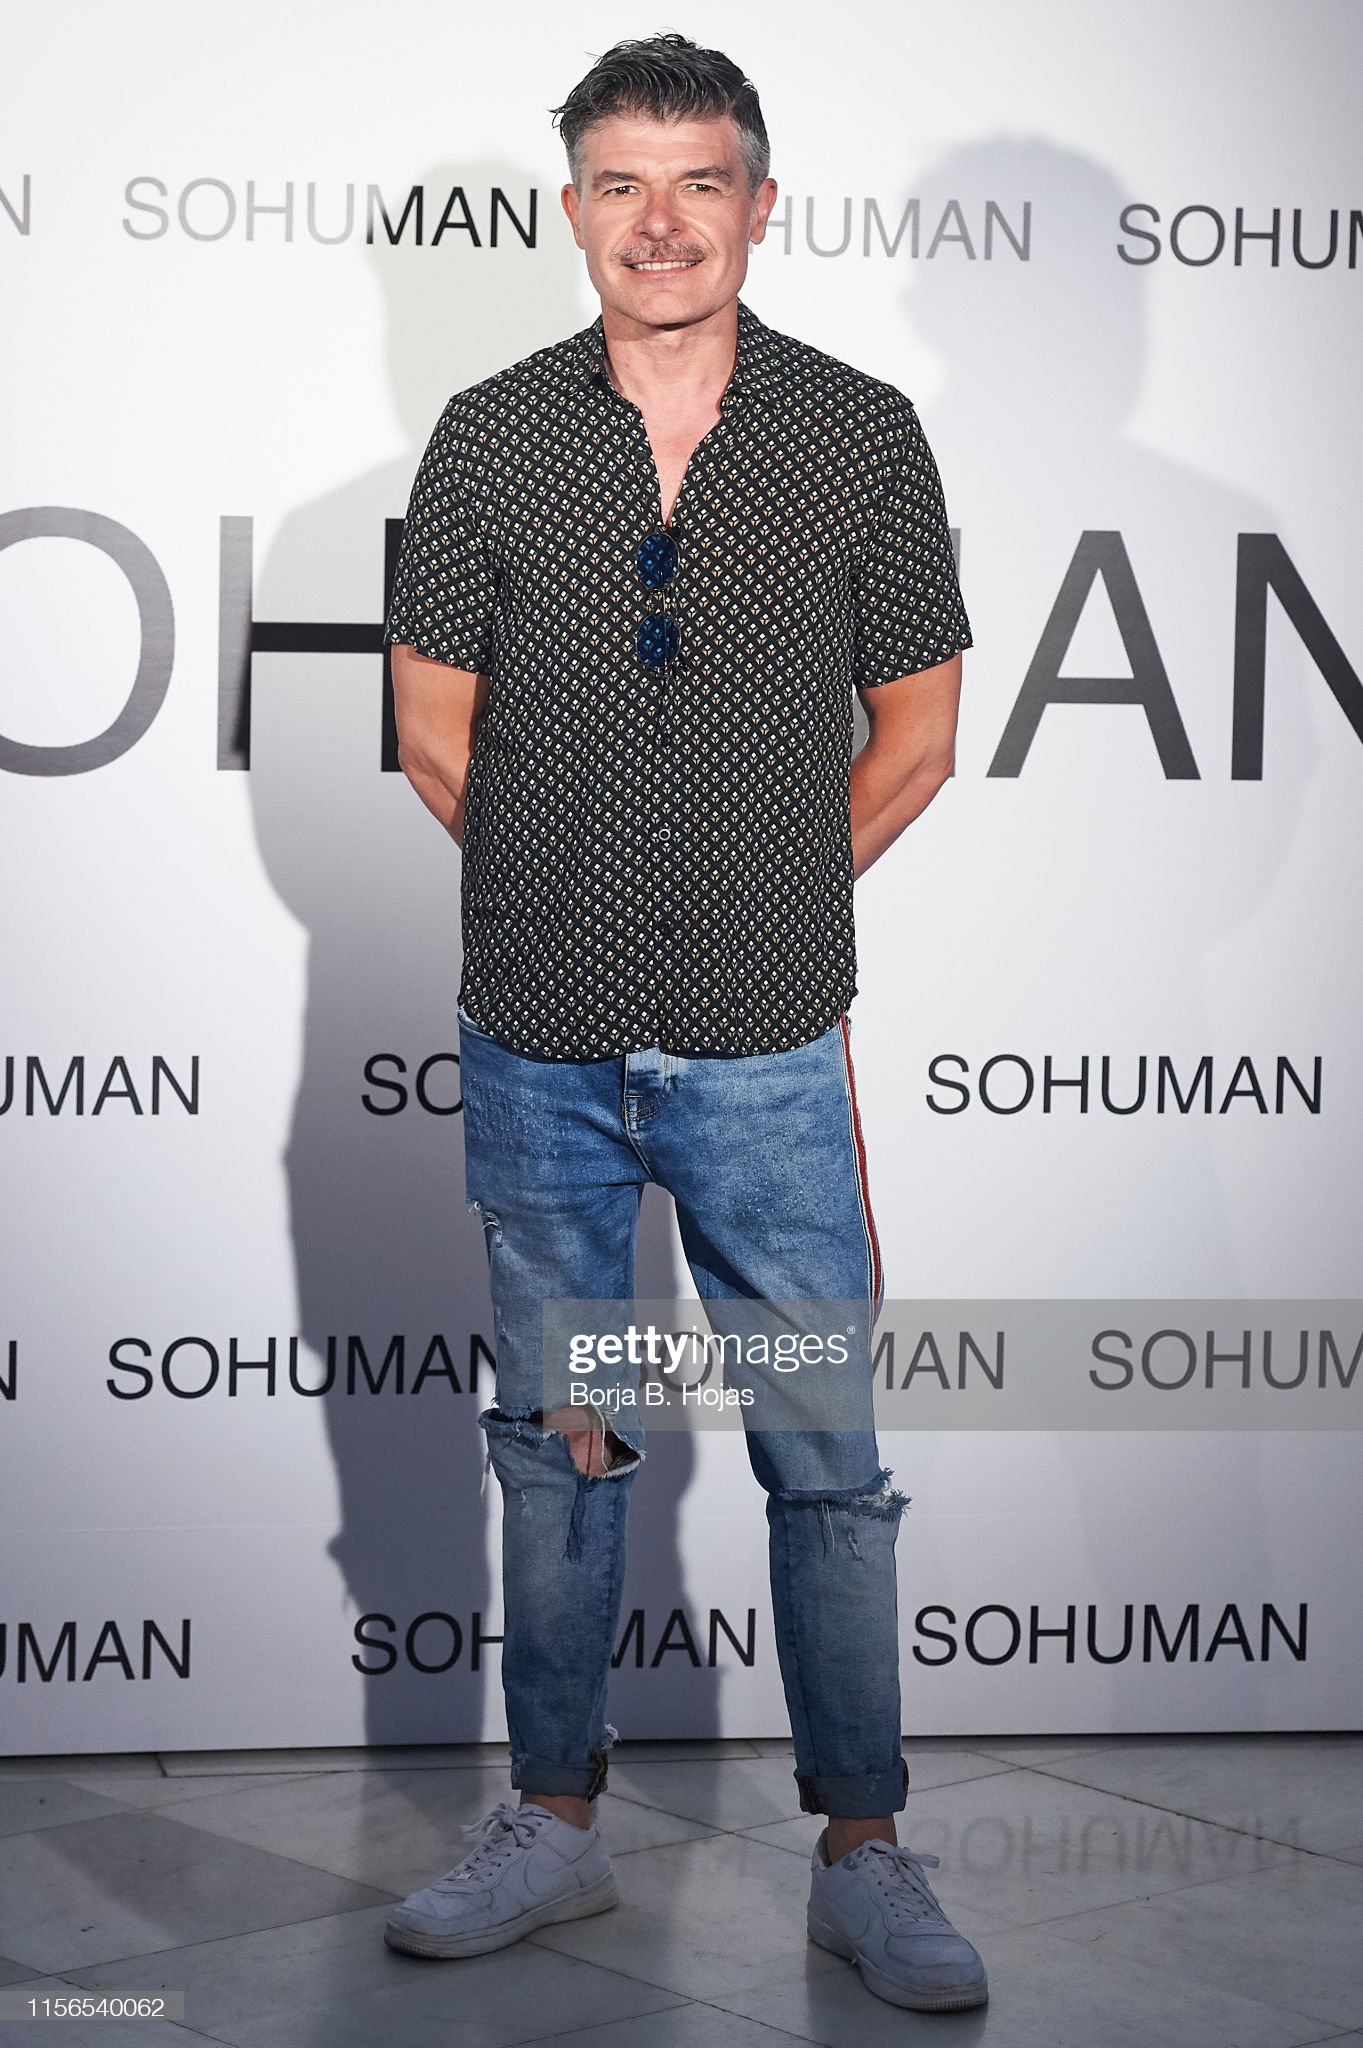 ¿Cuánto mide Nacho Guerreros? - Altura Nacho-guerreros-attends-photocall-before-sohuman-fashion-show-on-june-picture-id1156540062?s=2048x2048